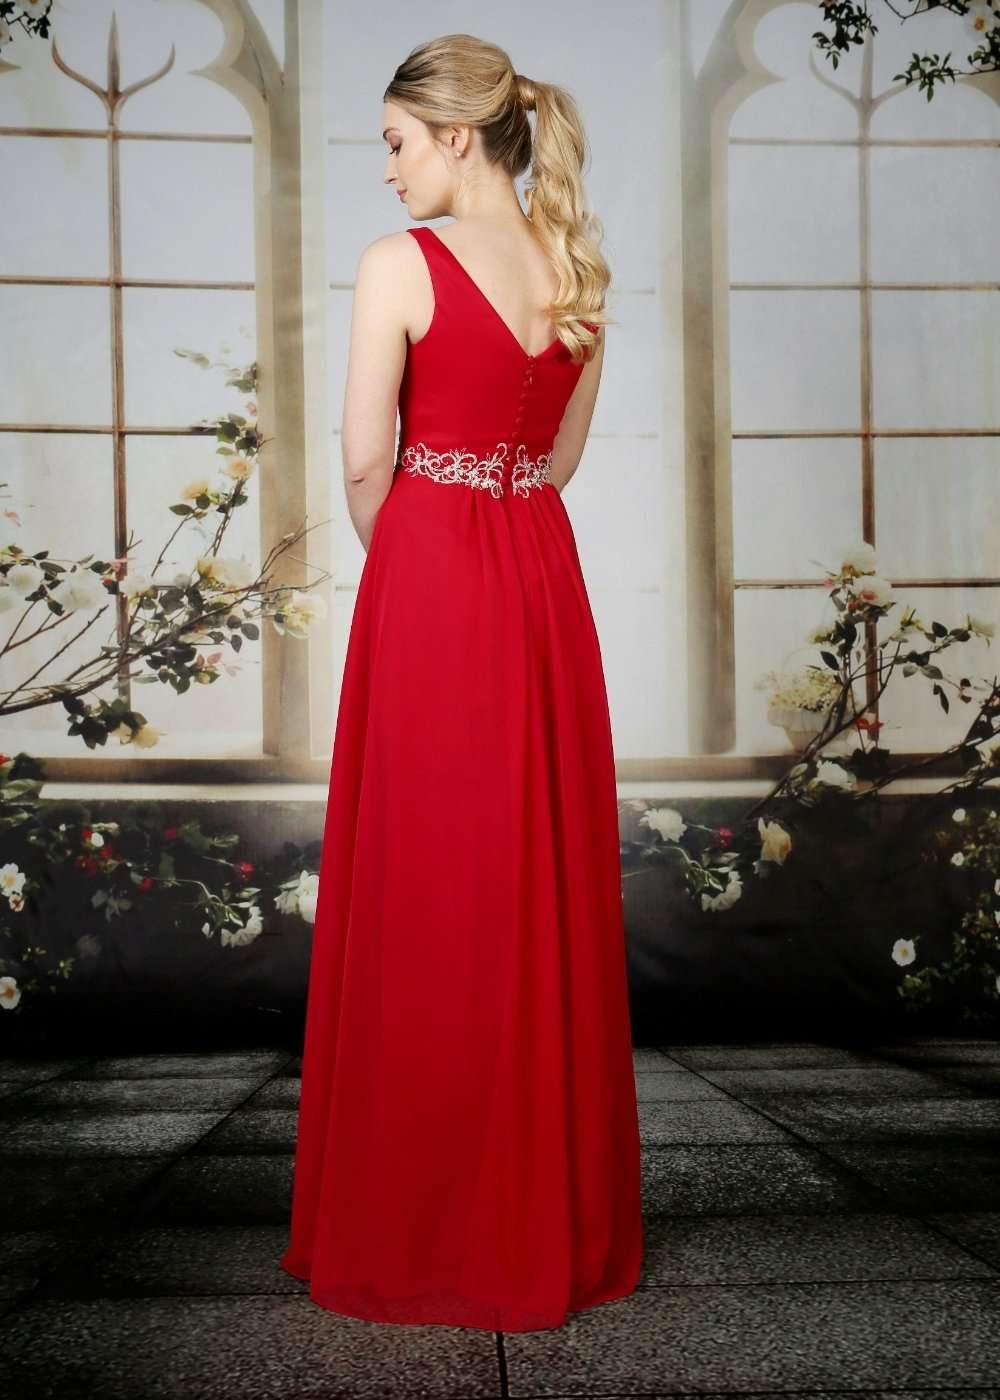 Selena Nieve Occasion - Adore Bridal and Occasion Wear